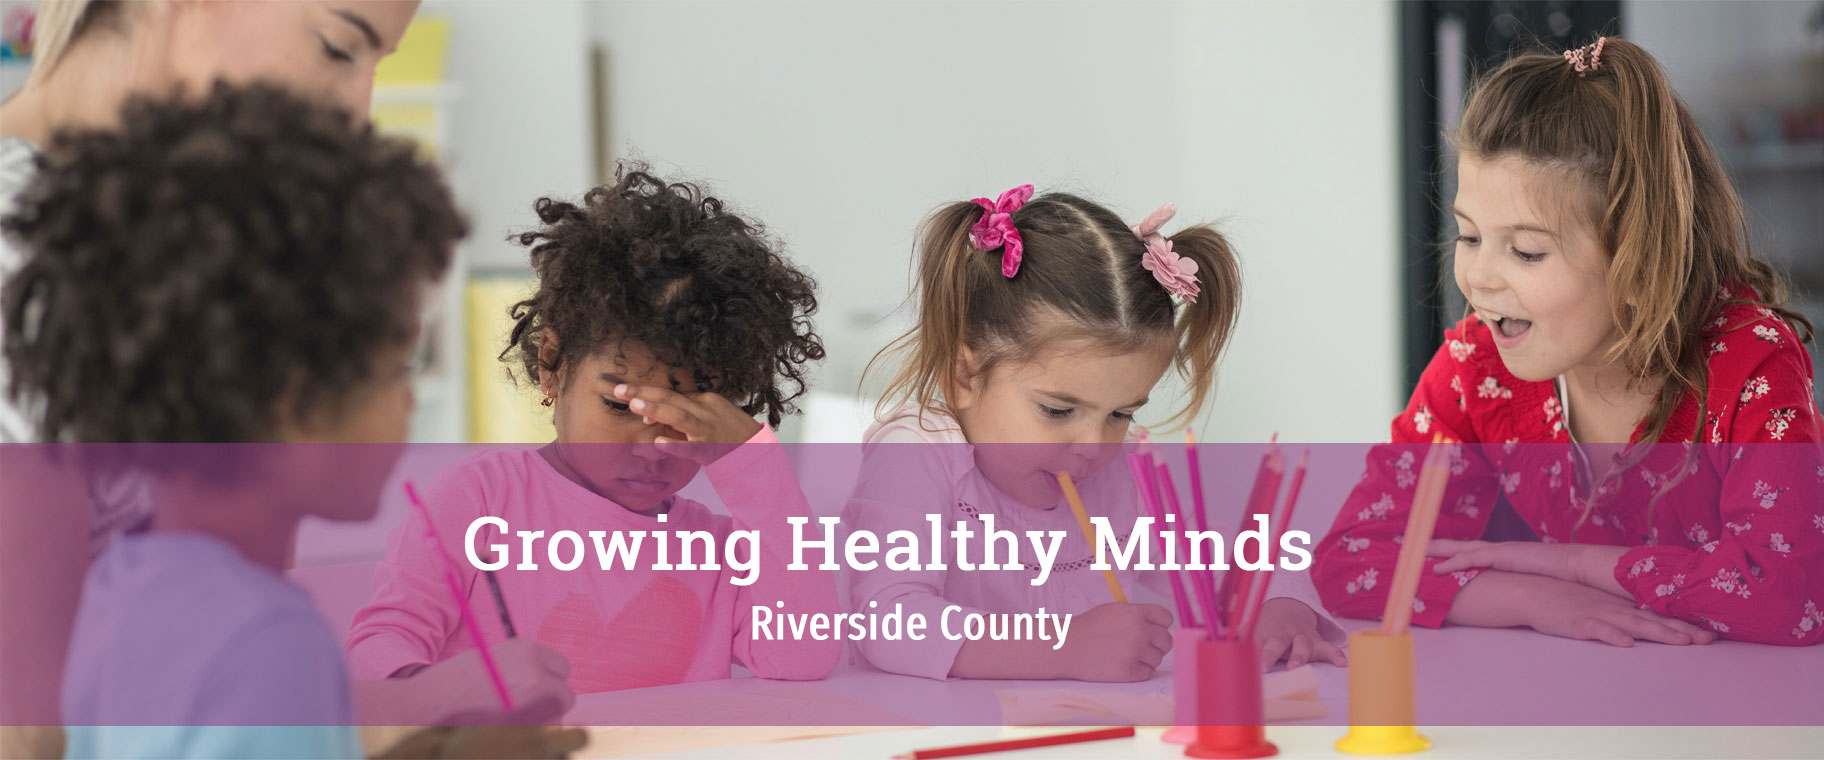 Growing Healthy Minds Banner